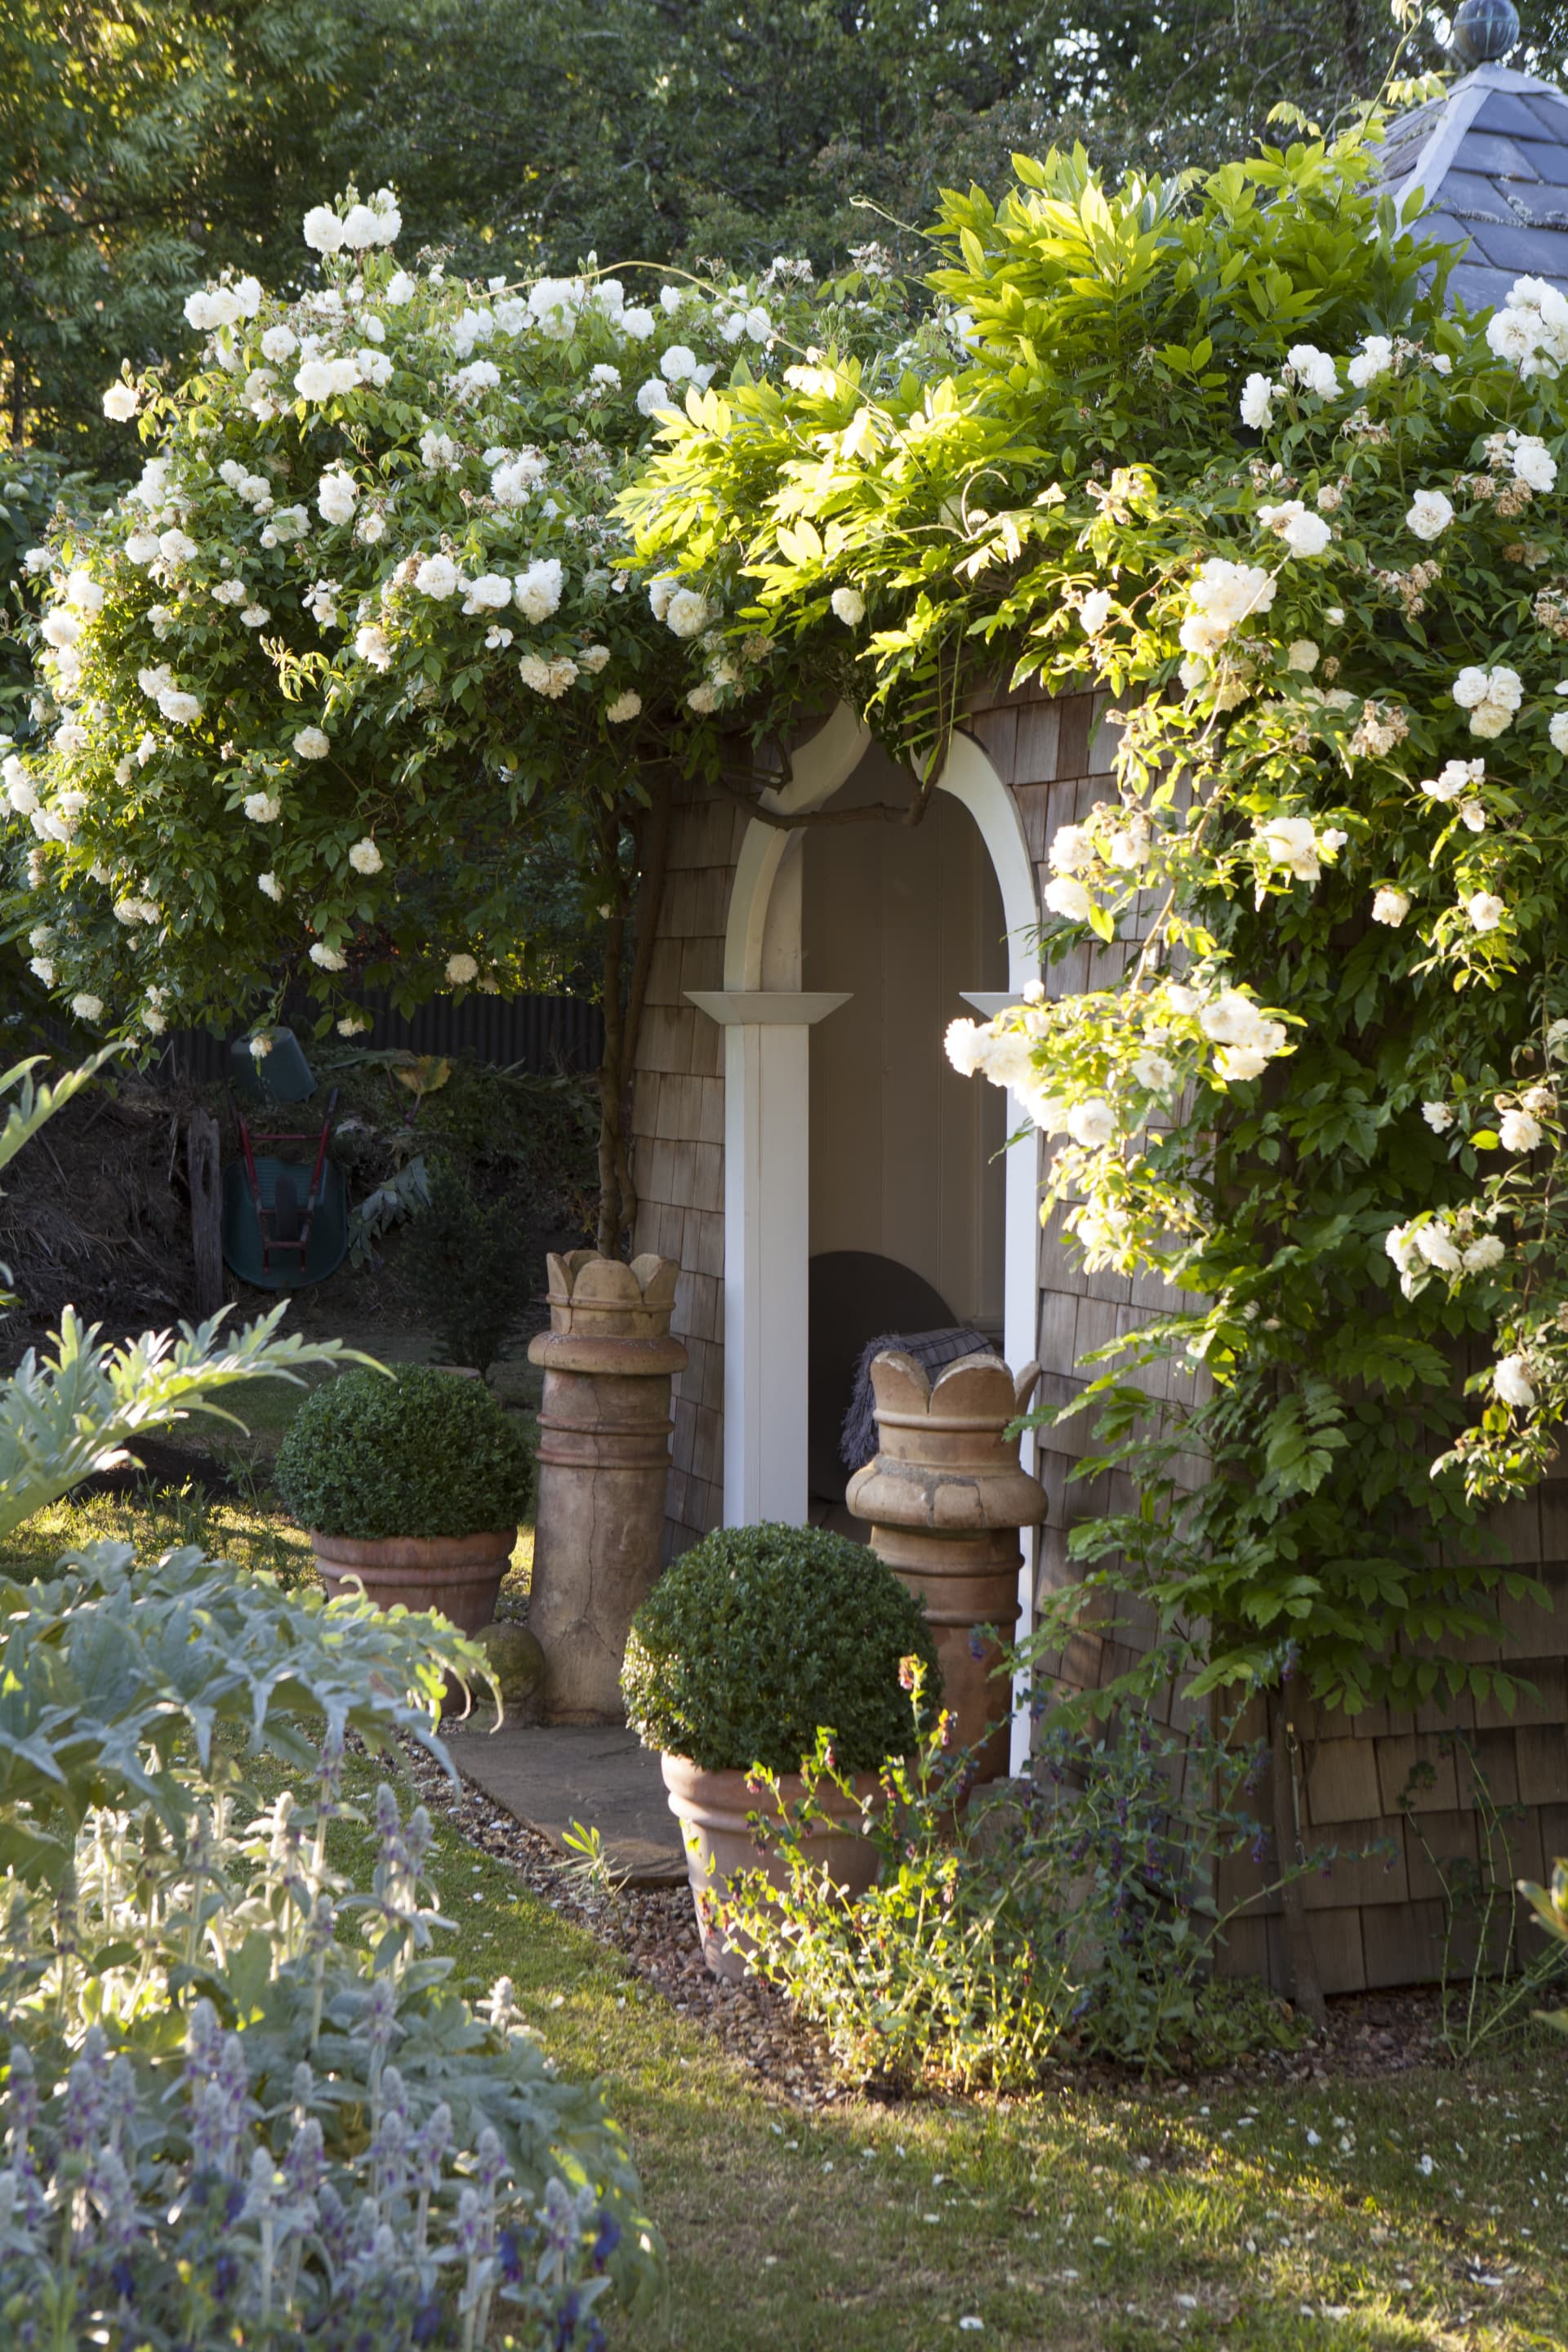 The summerhouse in the garden is engulfed in the white rose Lamarque; its citrus scent fills the air of the warm evenings in the garden.